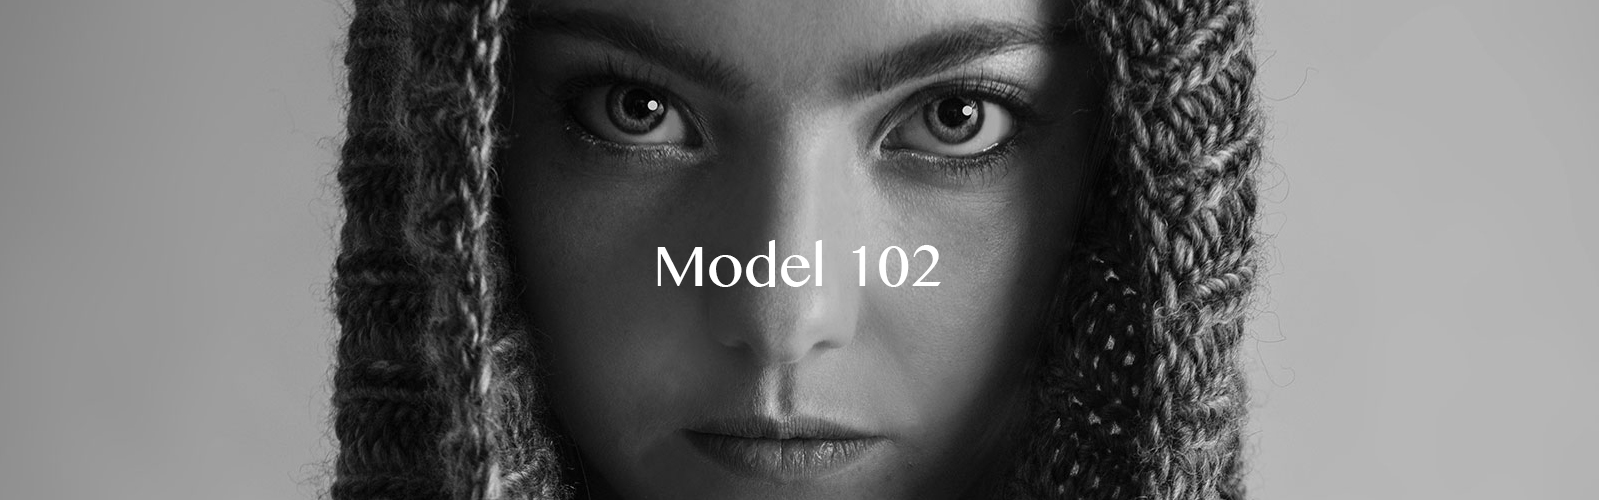 Model 102-header-with-text